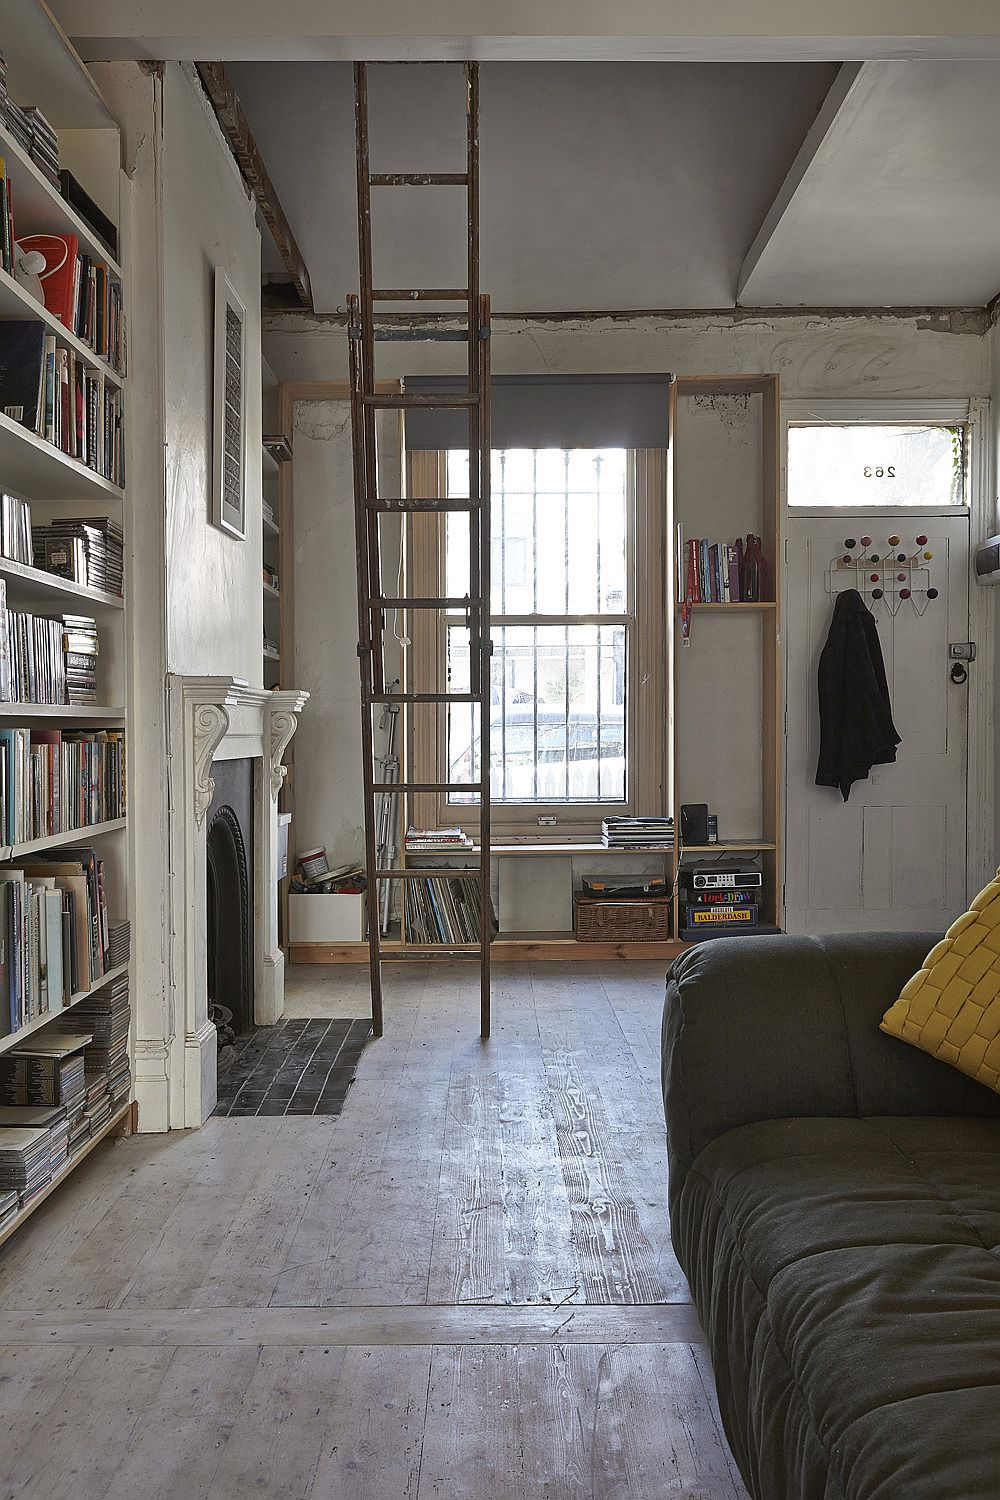 Ladder-is-sued-o-access-the-upper-shelves-in-the-hallway-58114